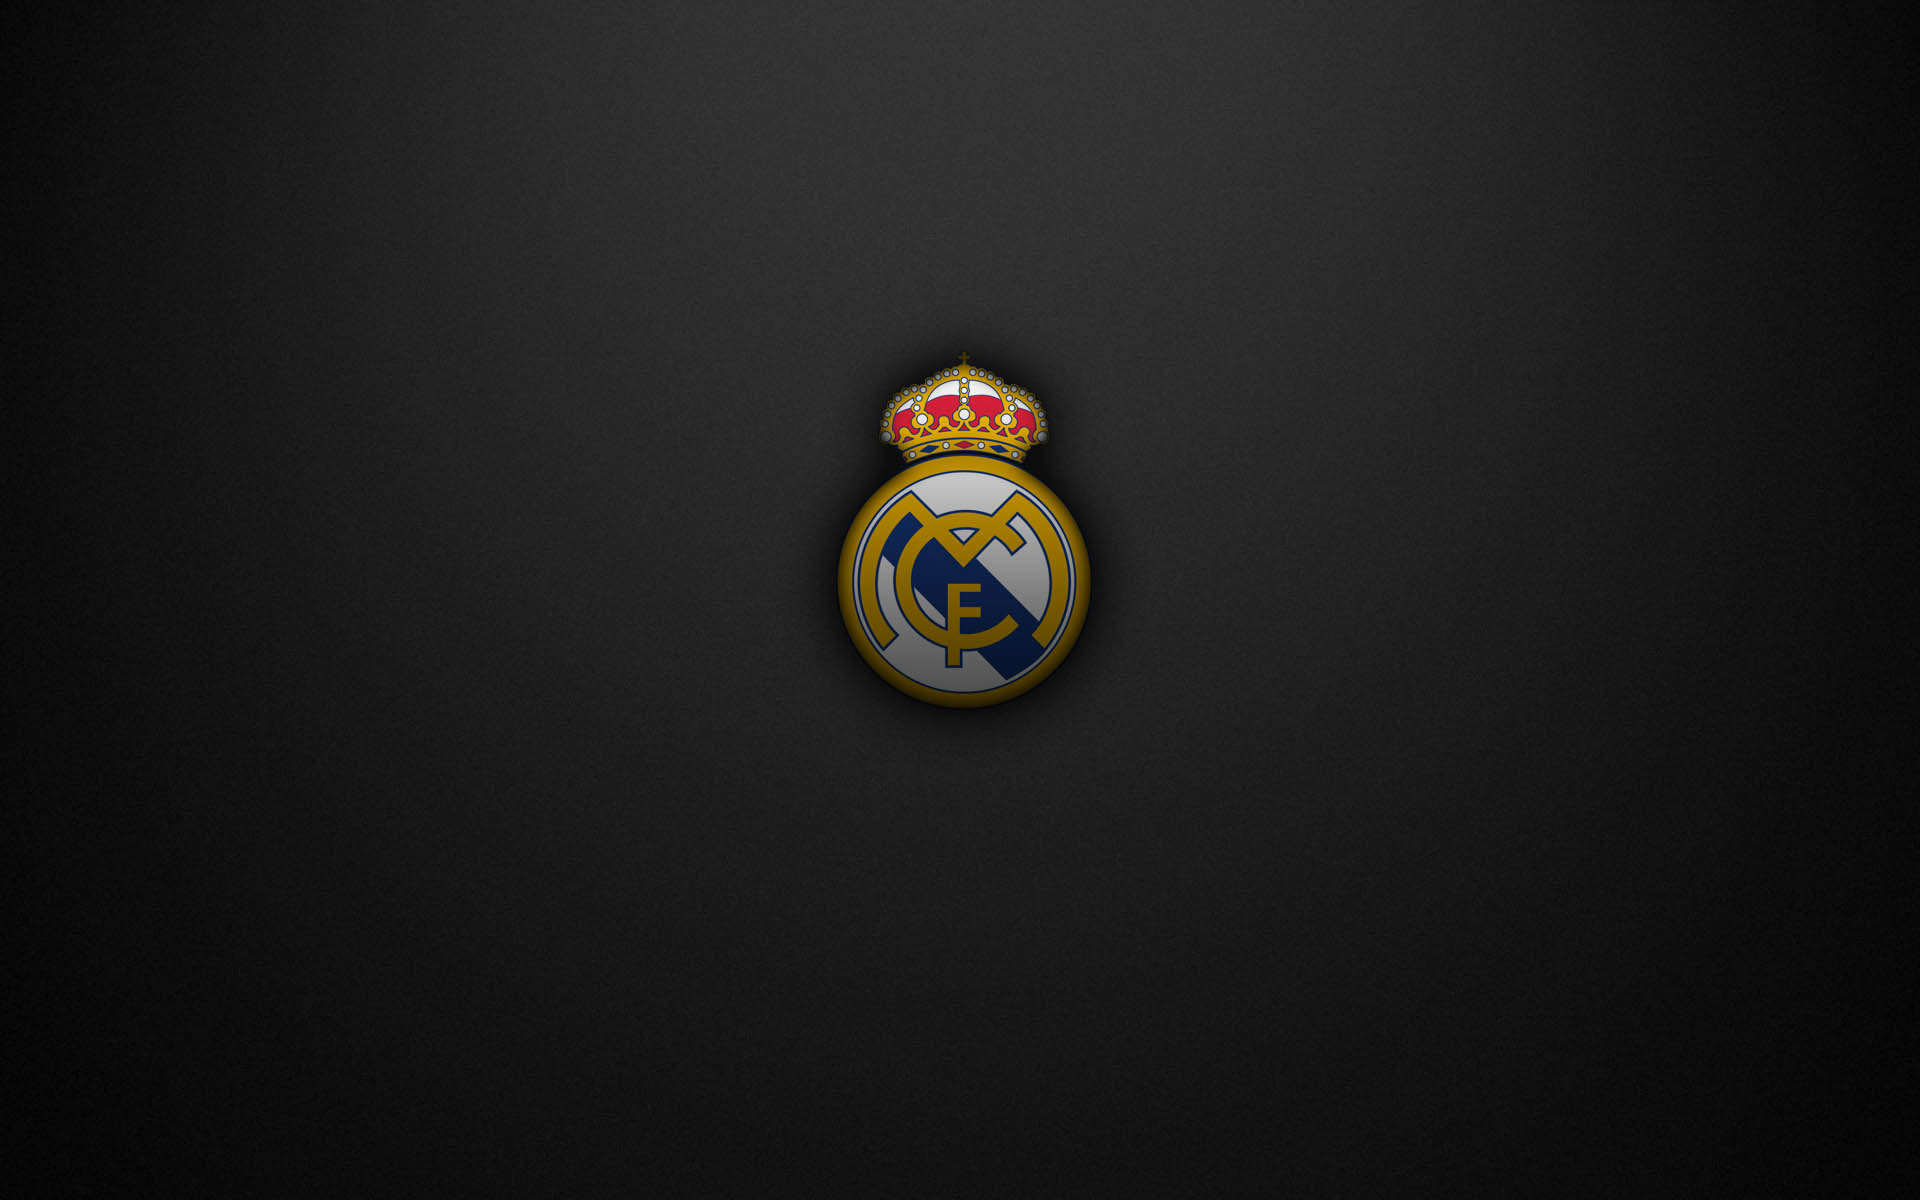 Real Madrid CF Amazing High Quality Wallpapers   All HD Wallpapers 1920x1200